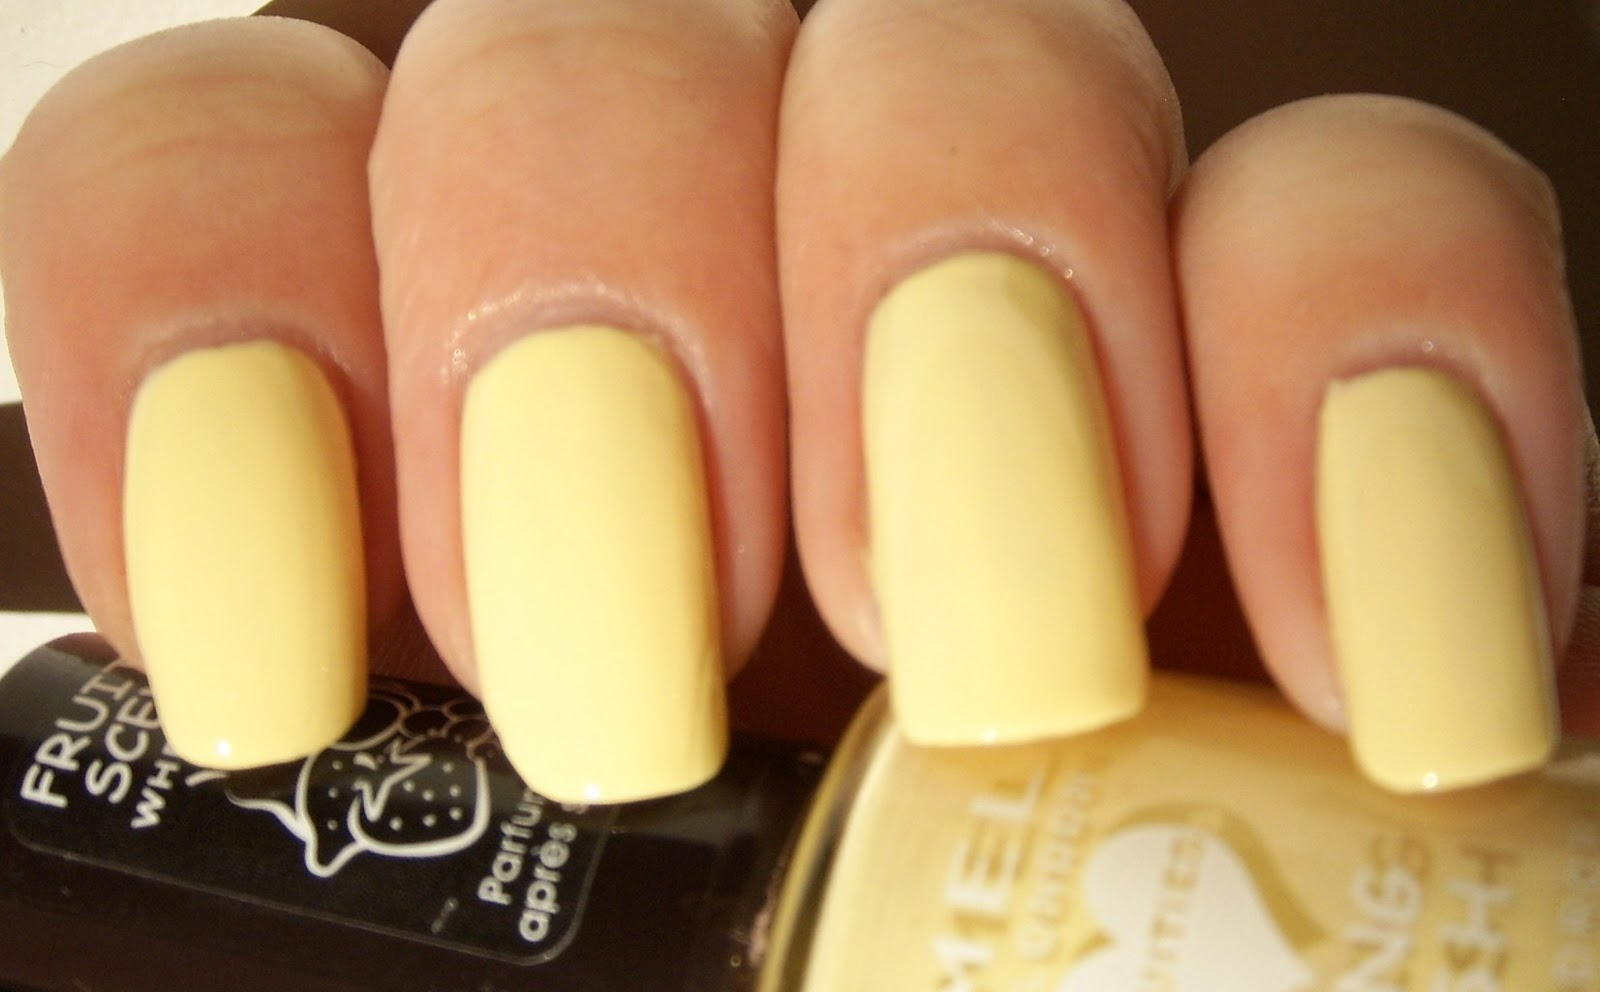 It's quite nice pastel yellow, but I didn't feel like it was for me by it self, so that's why I needed to have some konading over it.